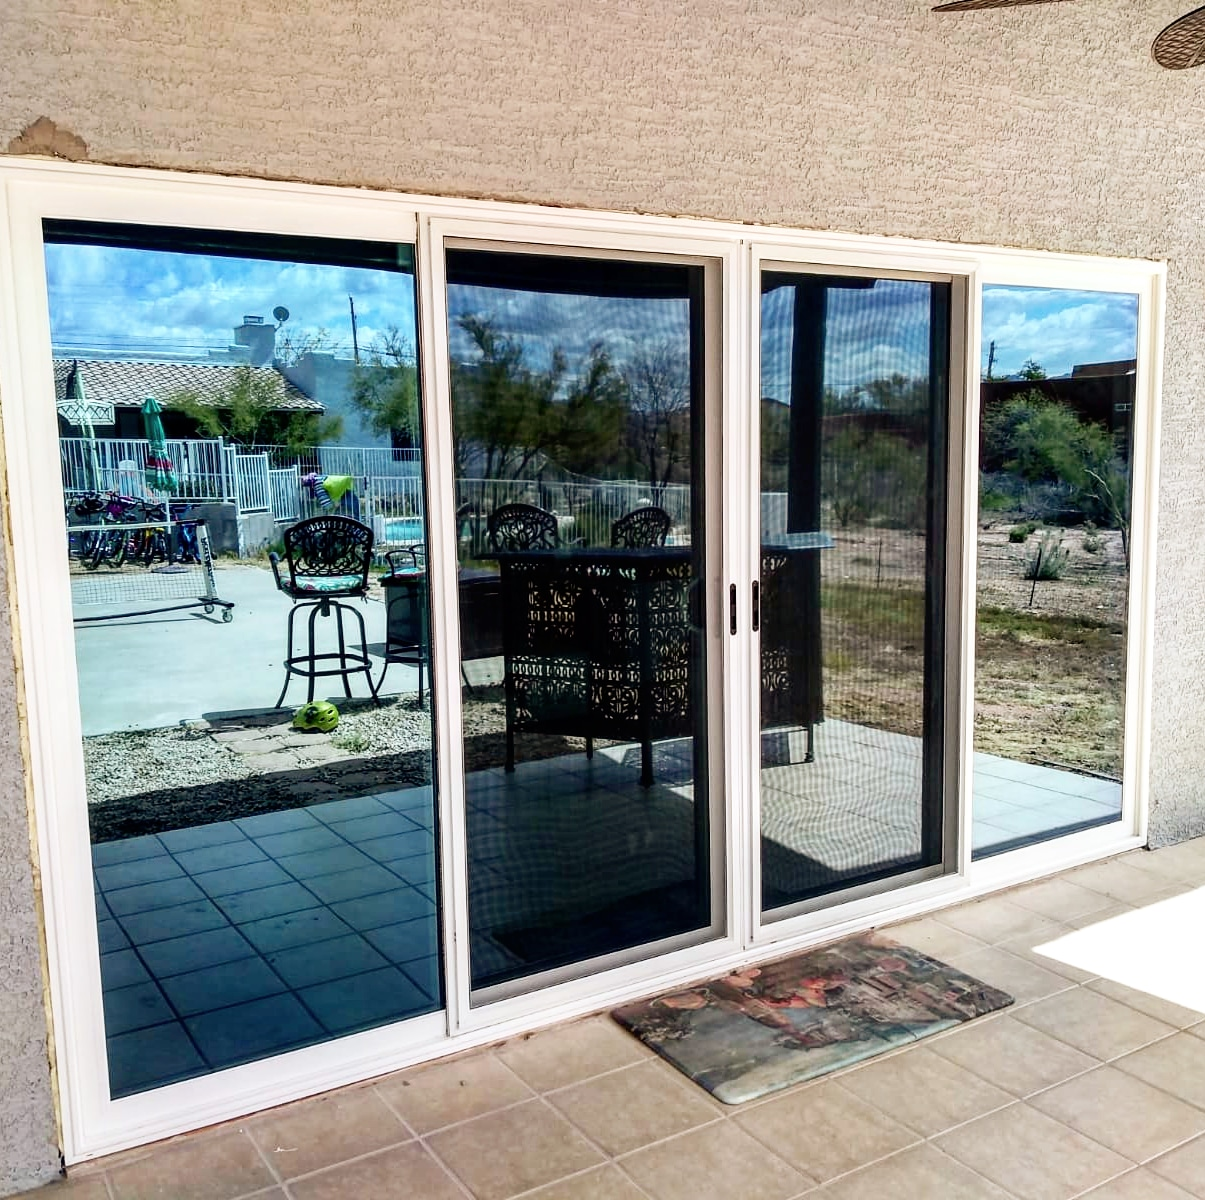 Arizona Window and Door in Scottsdale and Tucson showing patio french doors